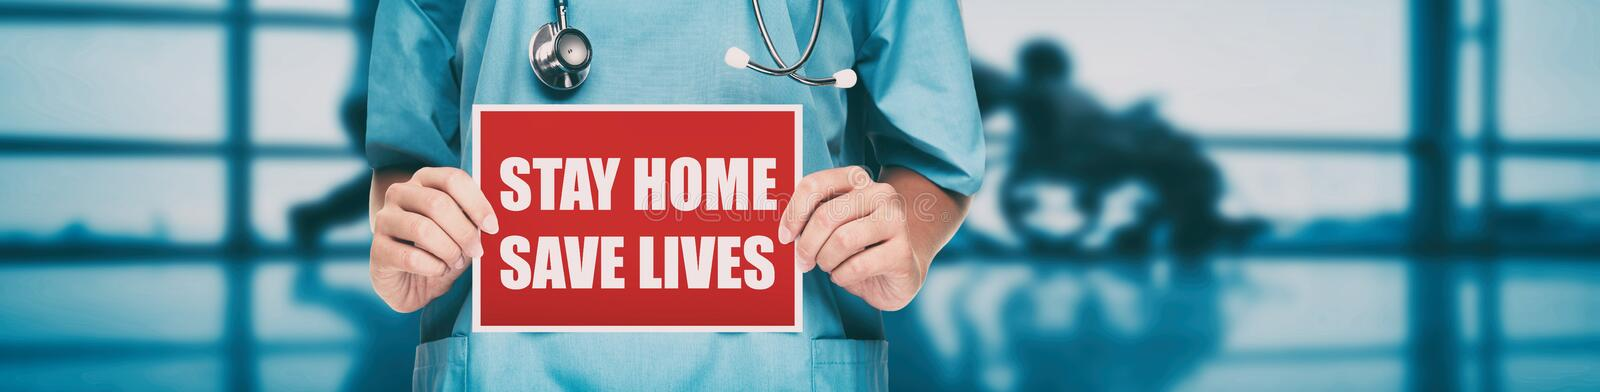 COVID-19 Social distancing quote medical nurse promoting staying at home to help workers. Coronavirus doctor holding. Sign in hospital background. Panoramic royalty free stock images